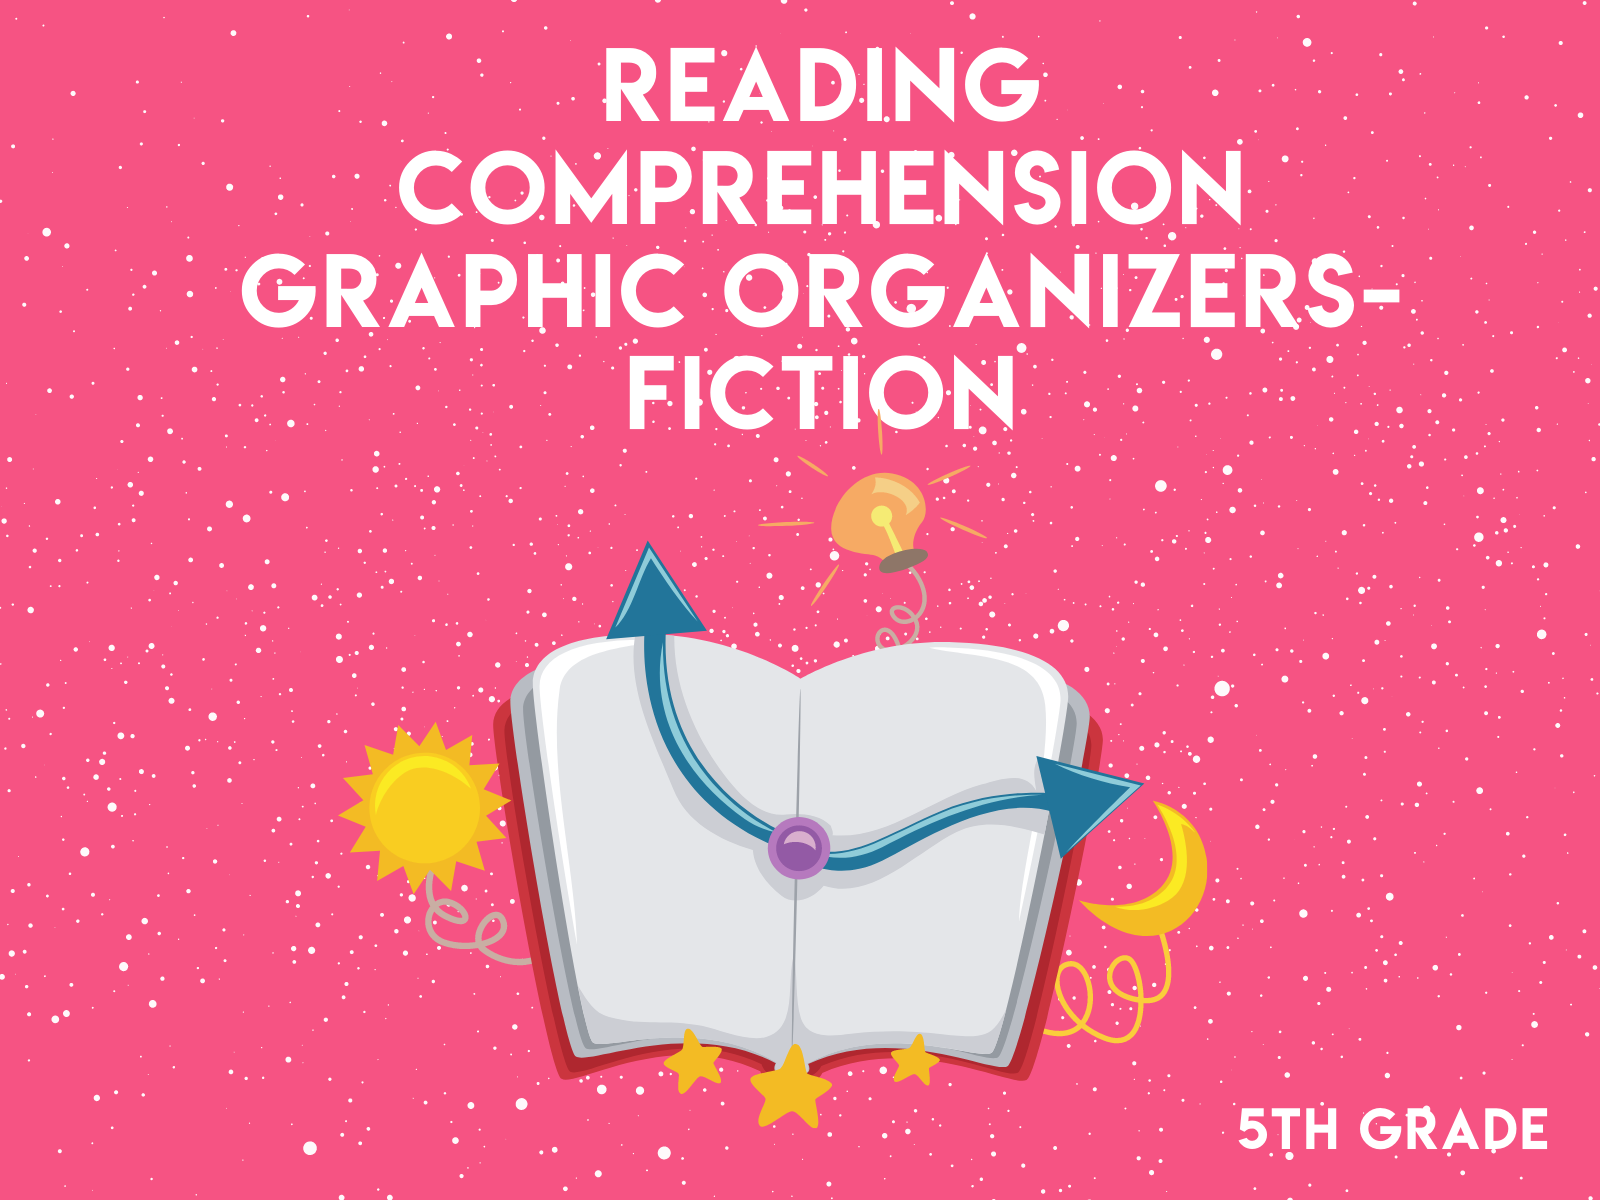 5th Grade - Reading CGO Fiction   Reading comprehension help for 5th graders